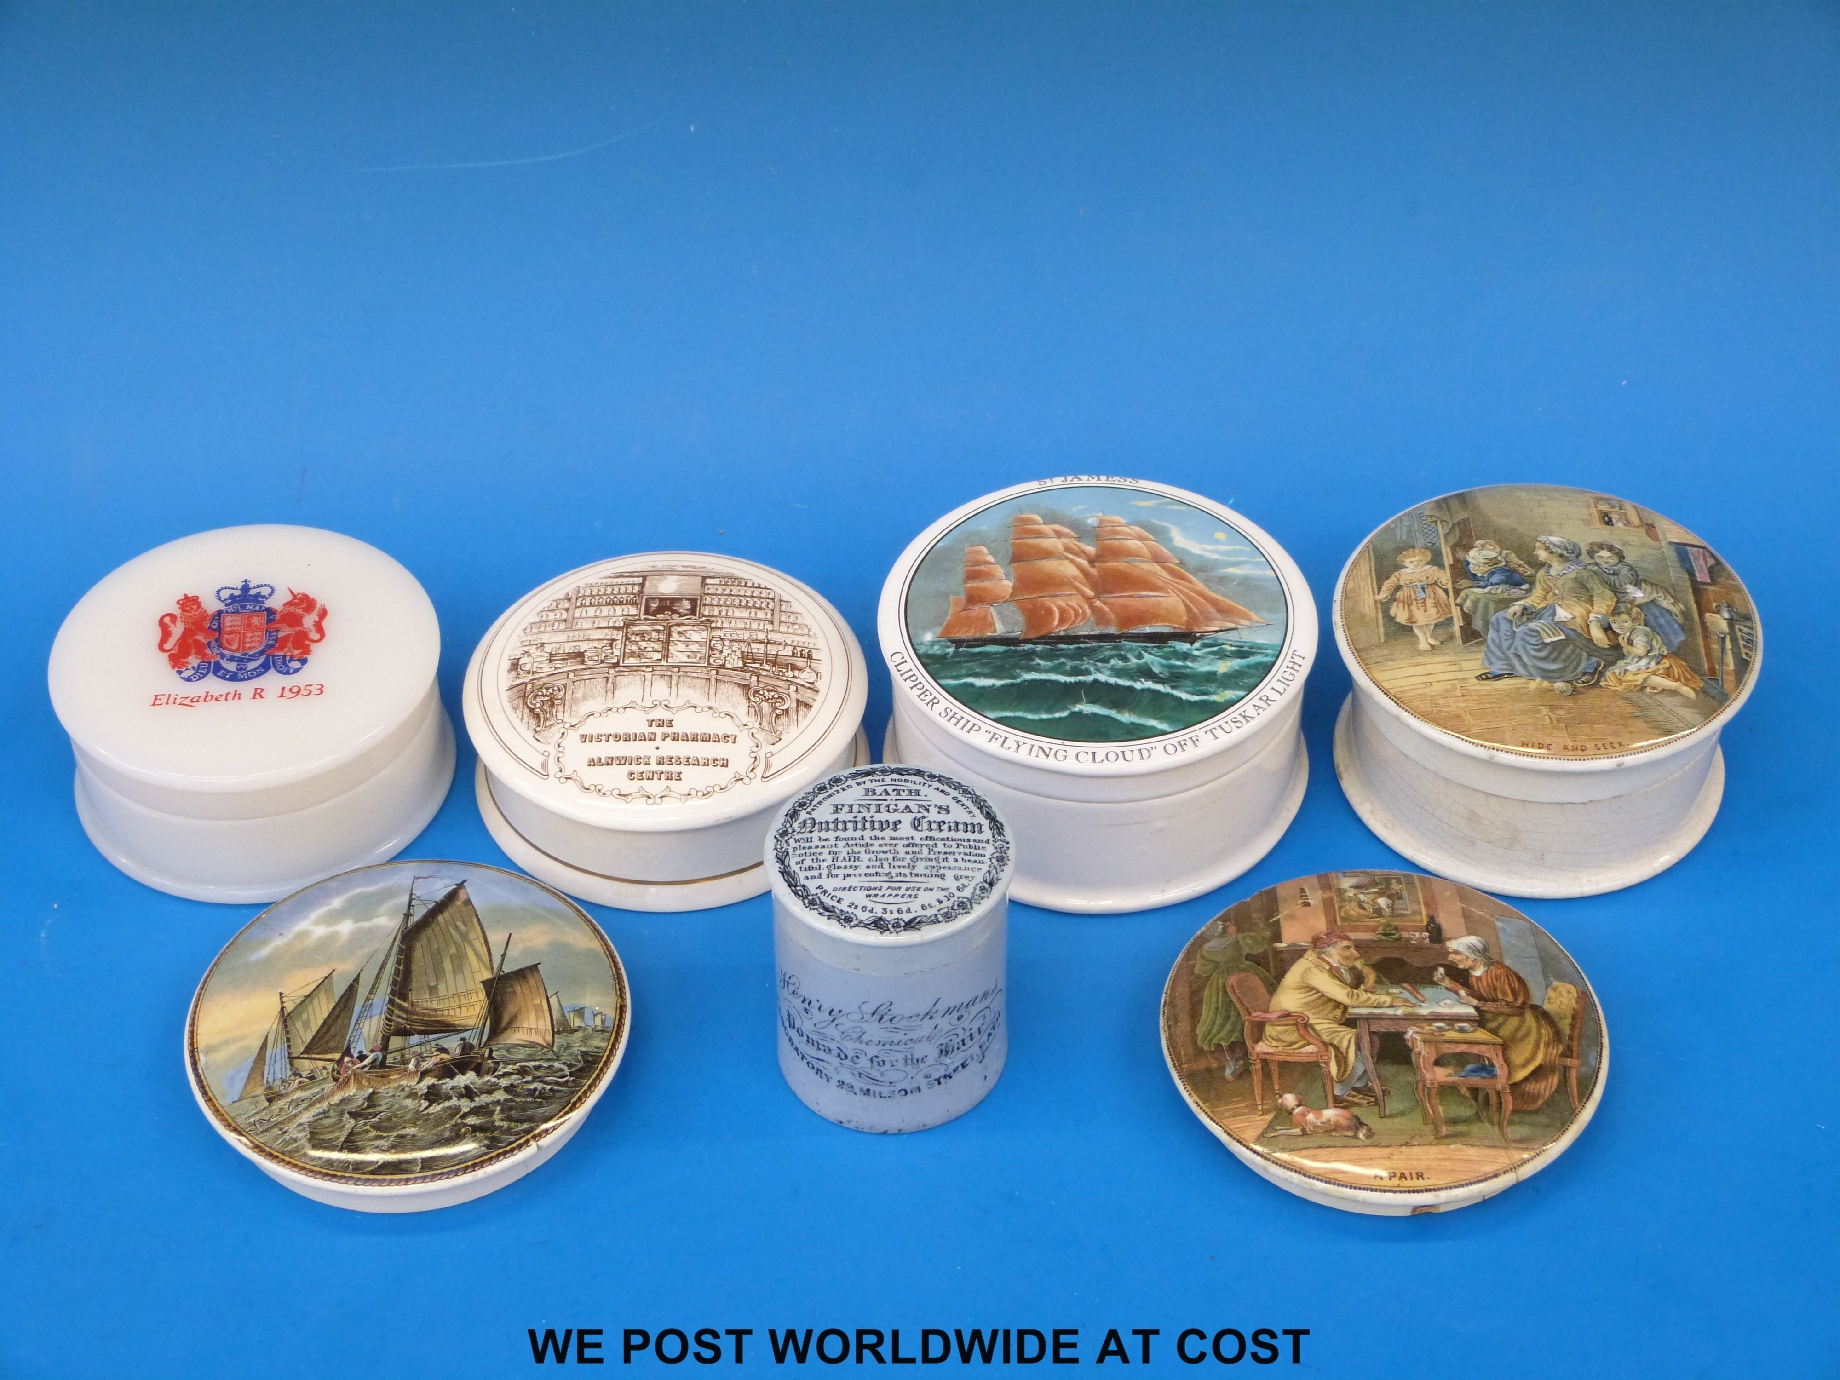 Lot 219 - A collection of pot lids to include a Finigan's of Bath medical pot